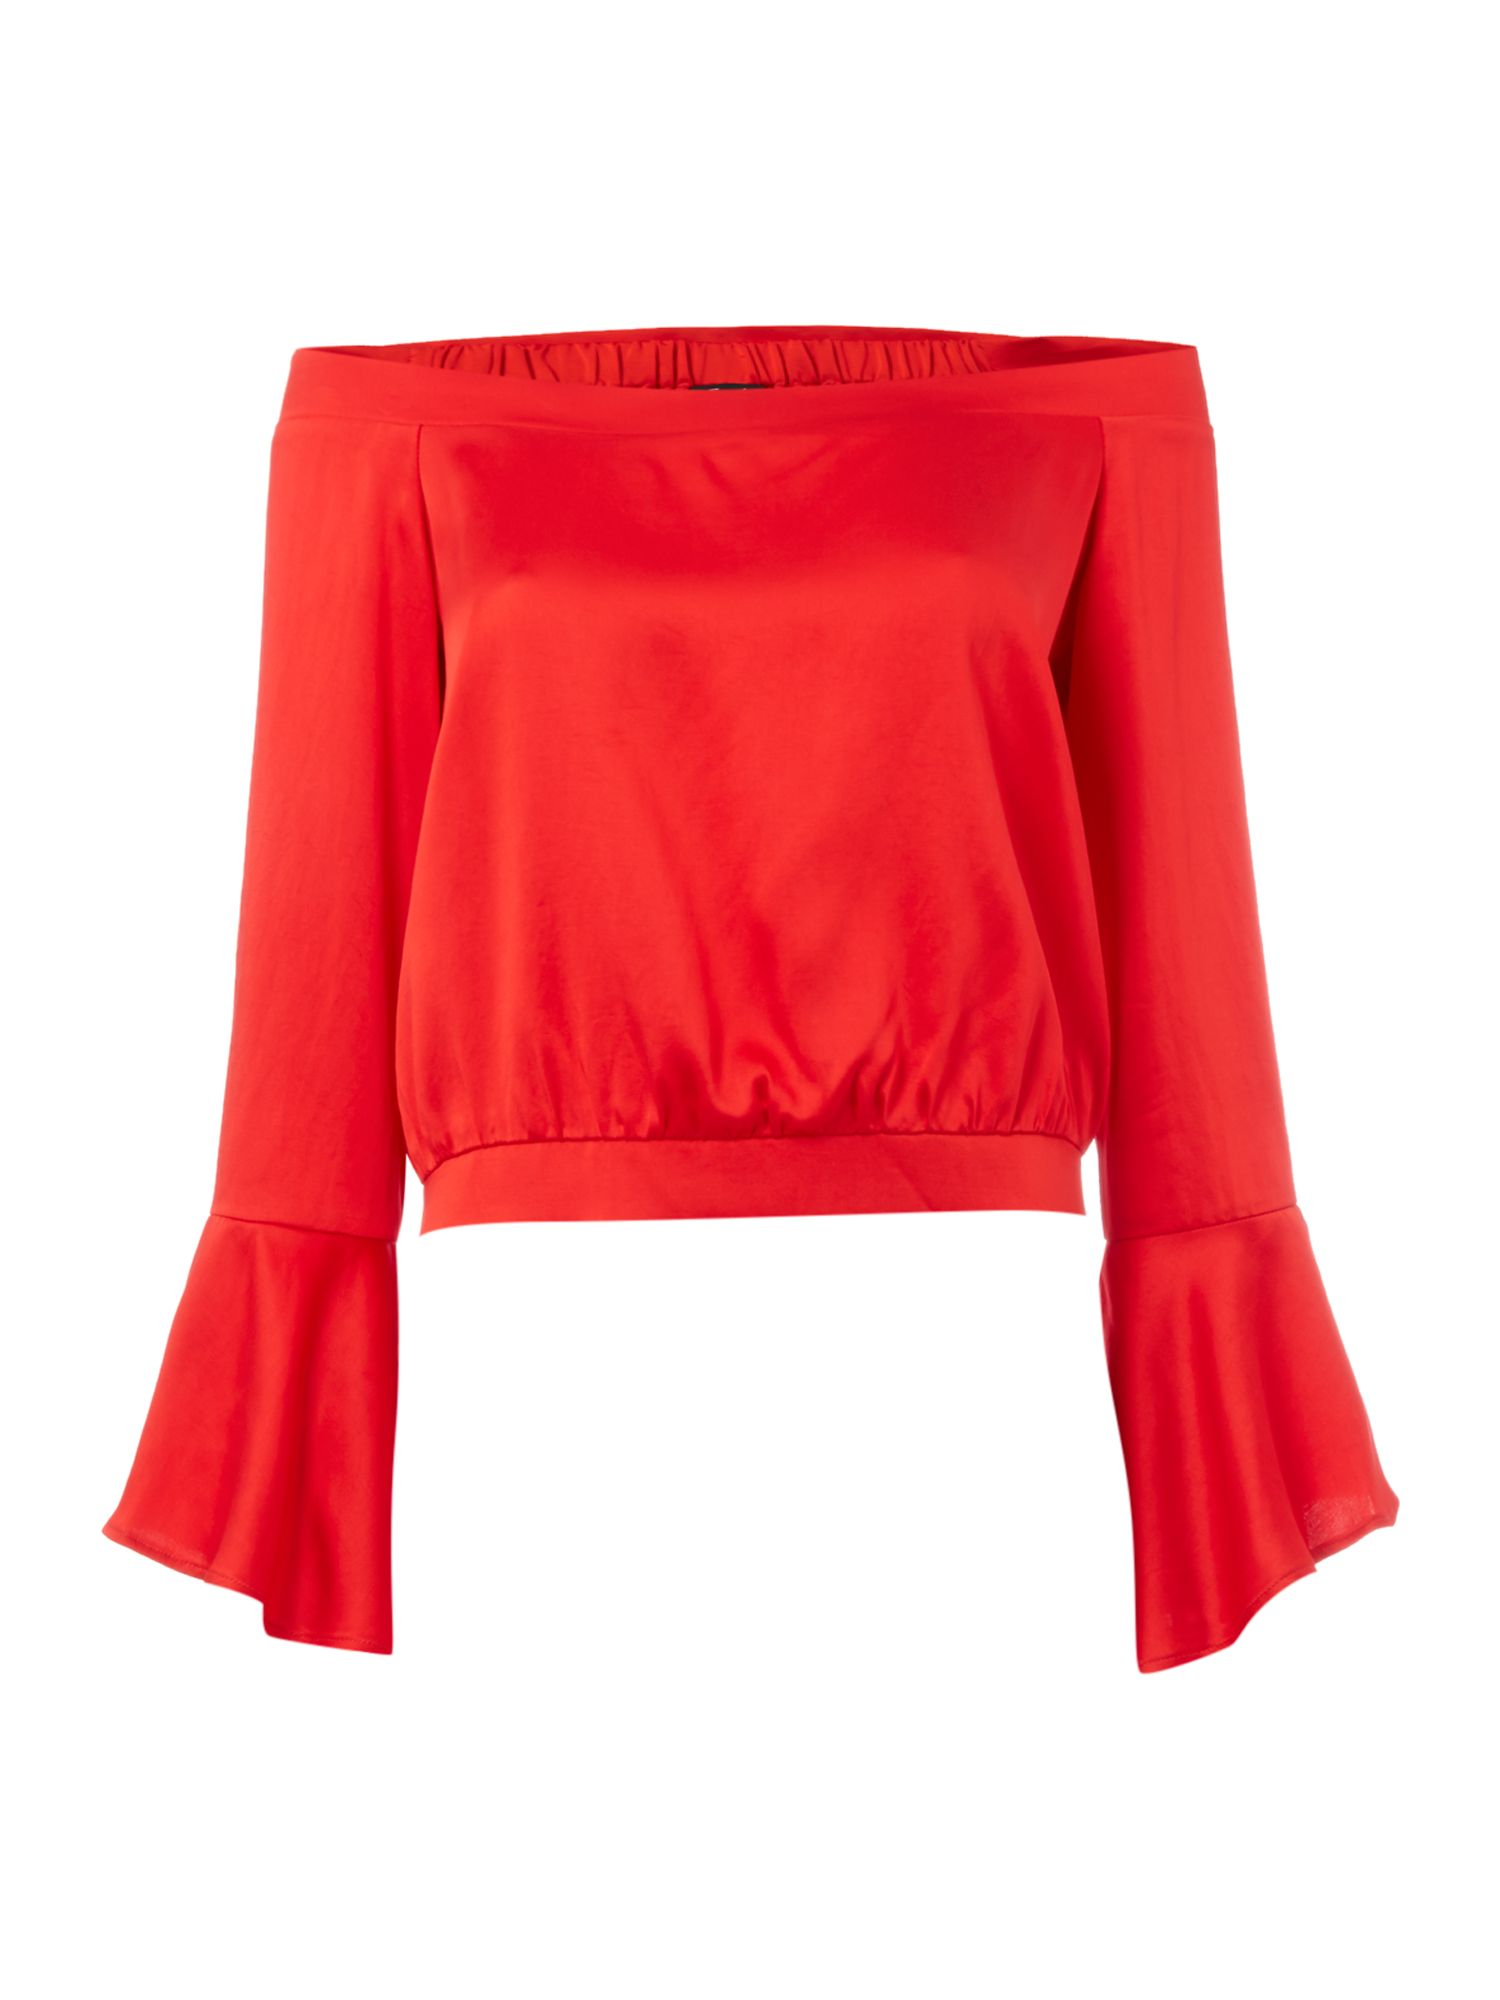 Bardot paige longsleeve top, Red